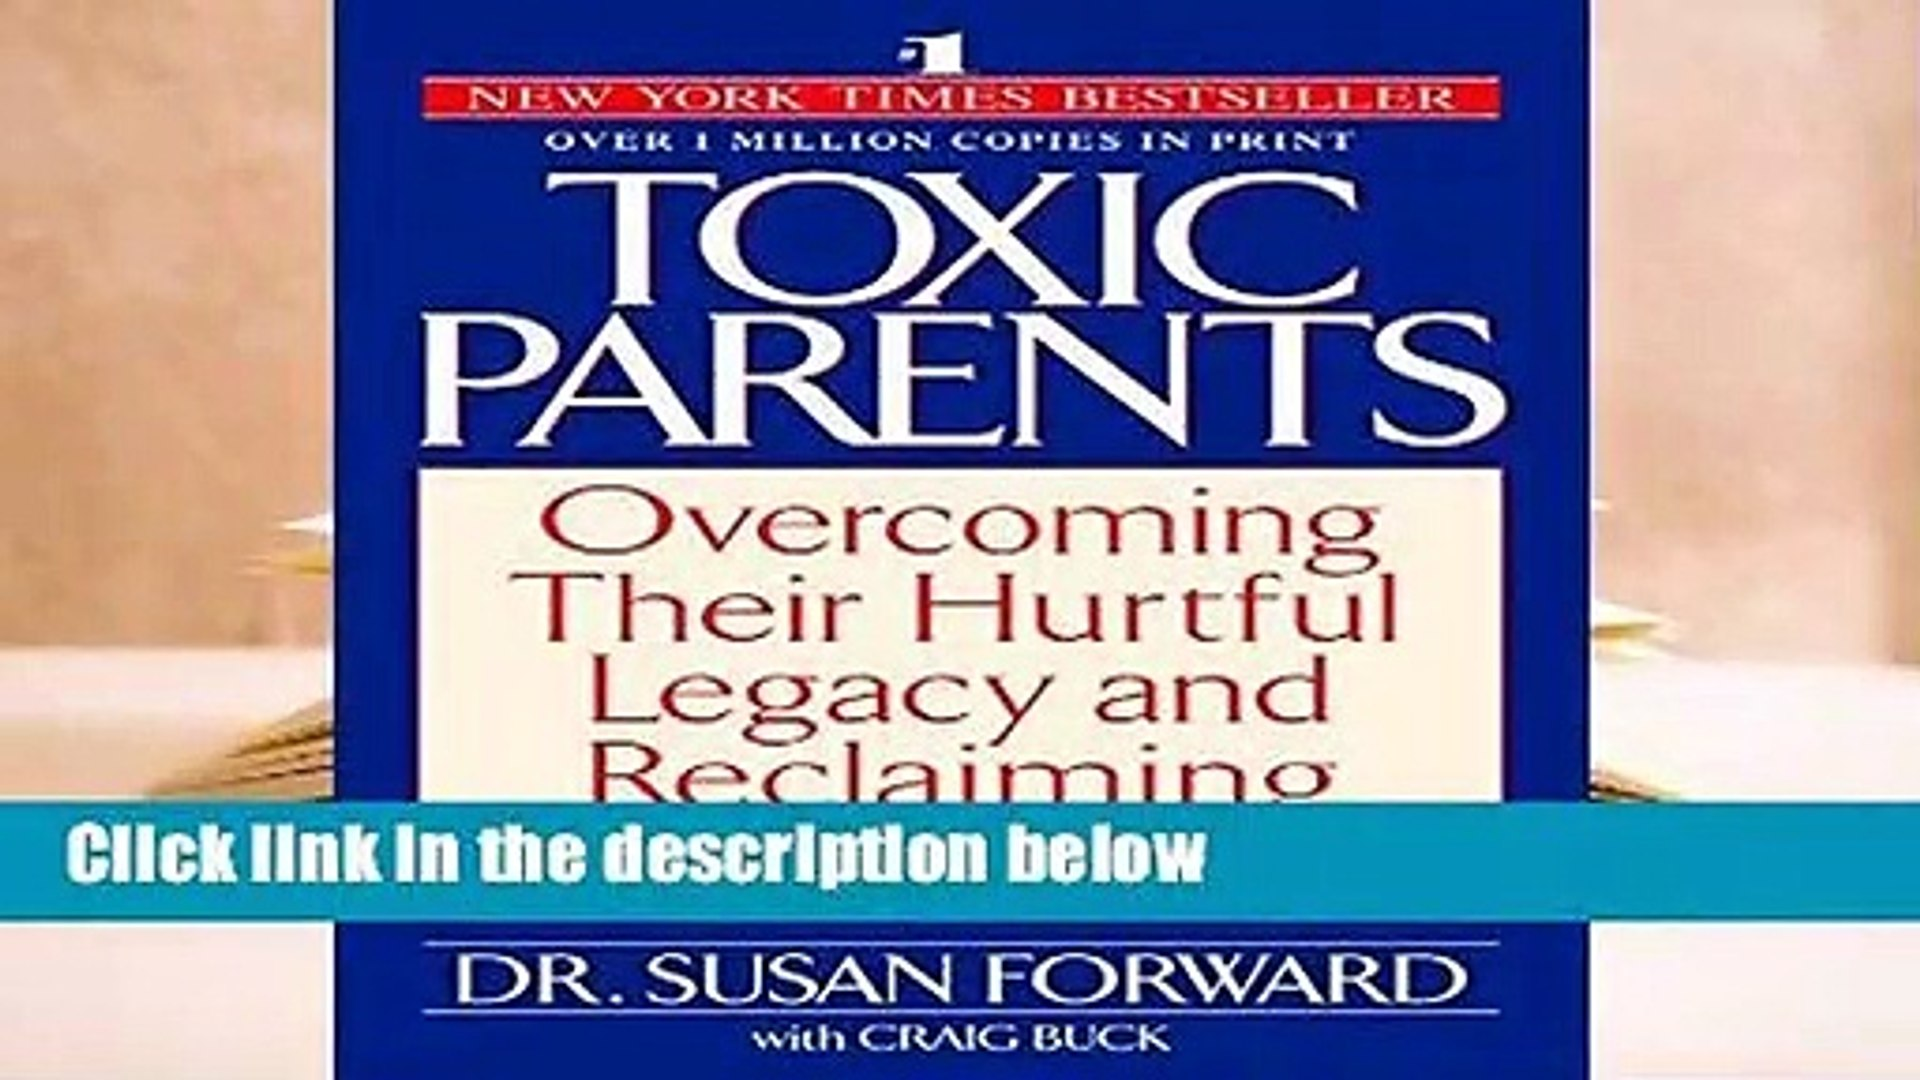 About For Books Toxic Parents Best Sellers